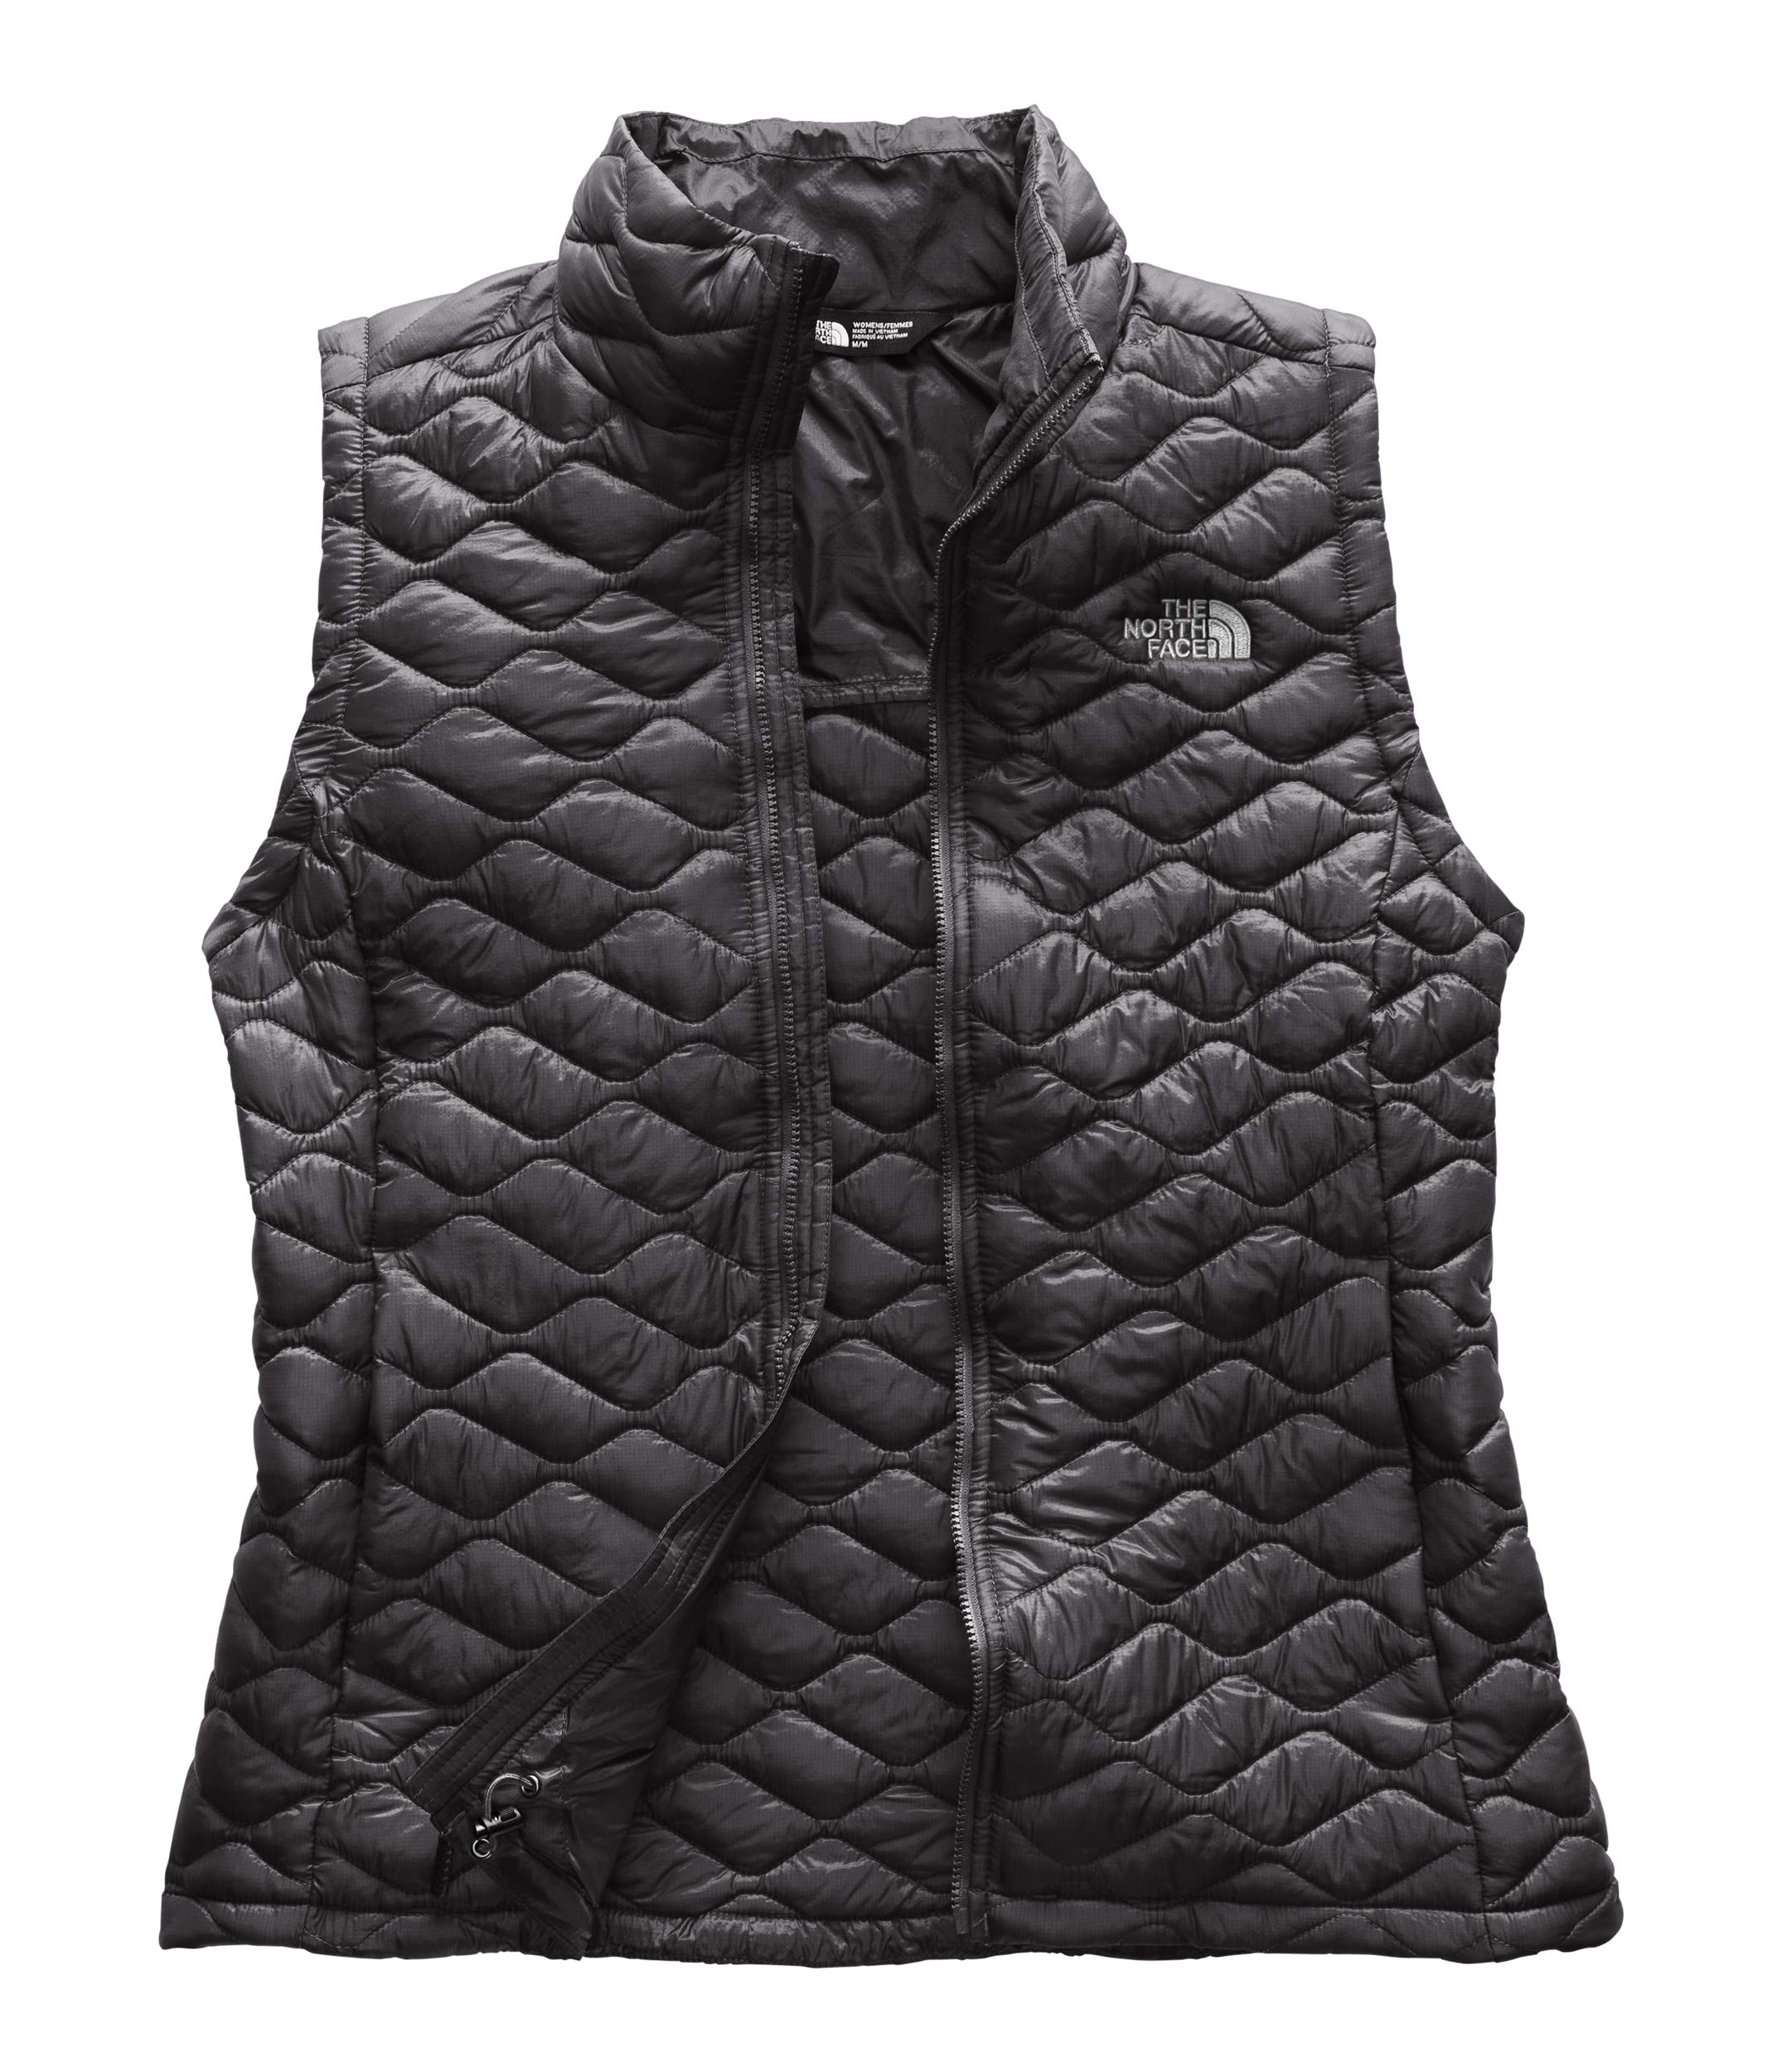 The North Face Women's Thermoball Vest - Asphalt Grey - M by The North Face